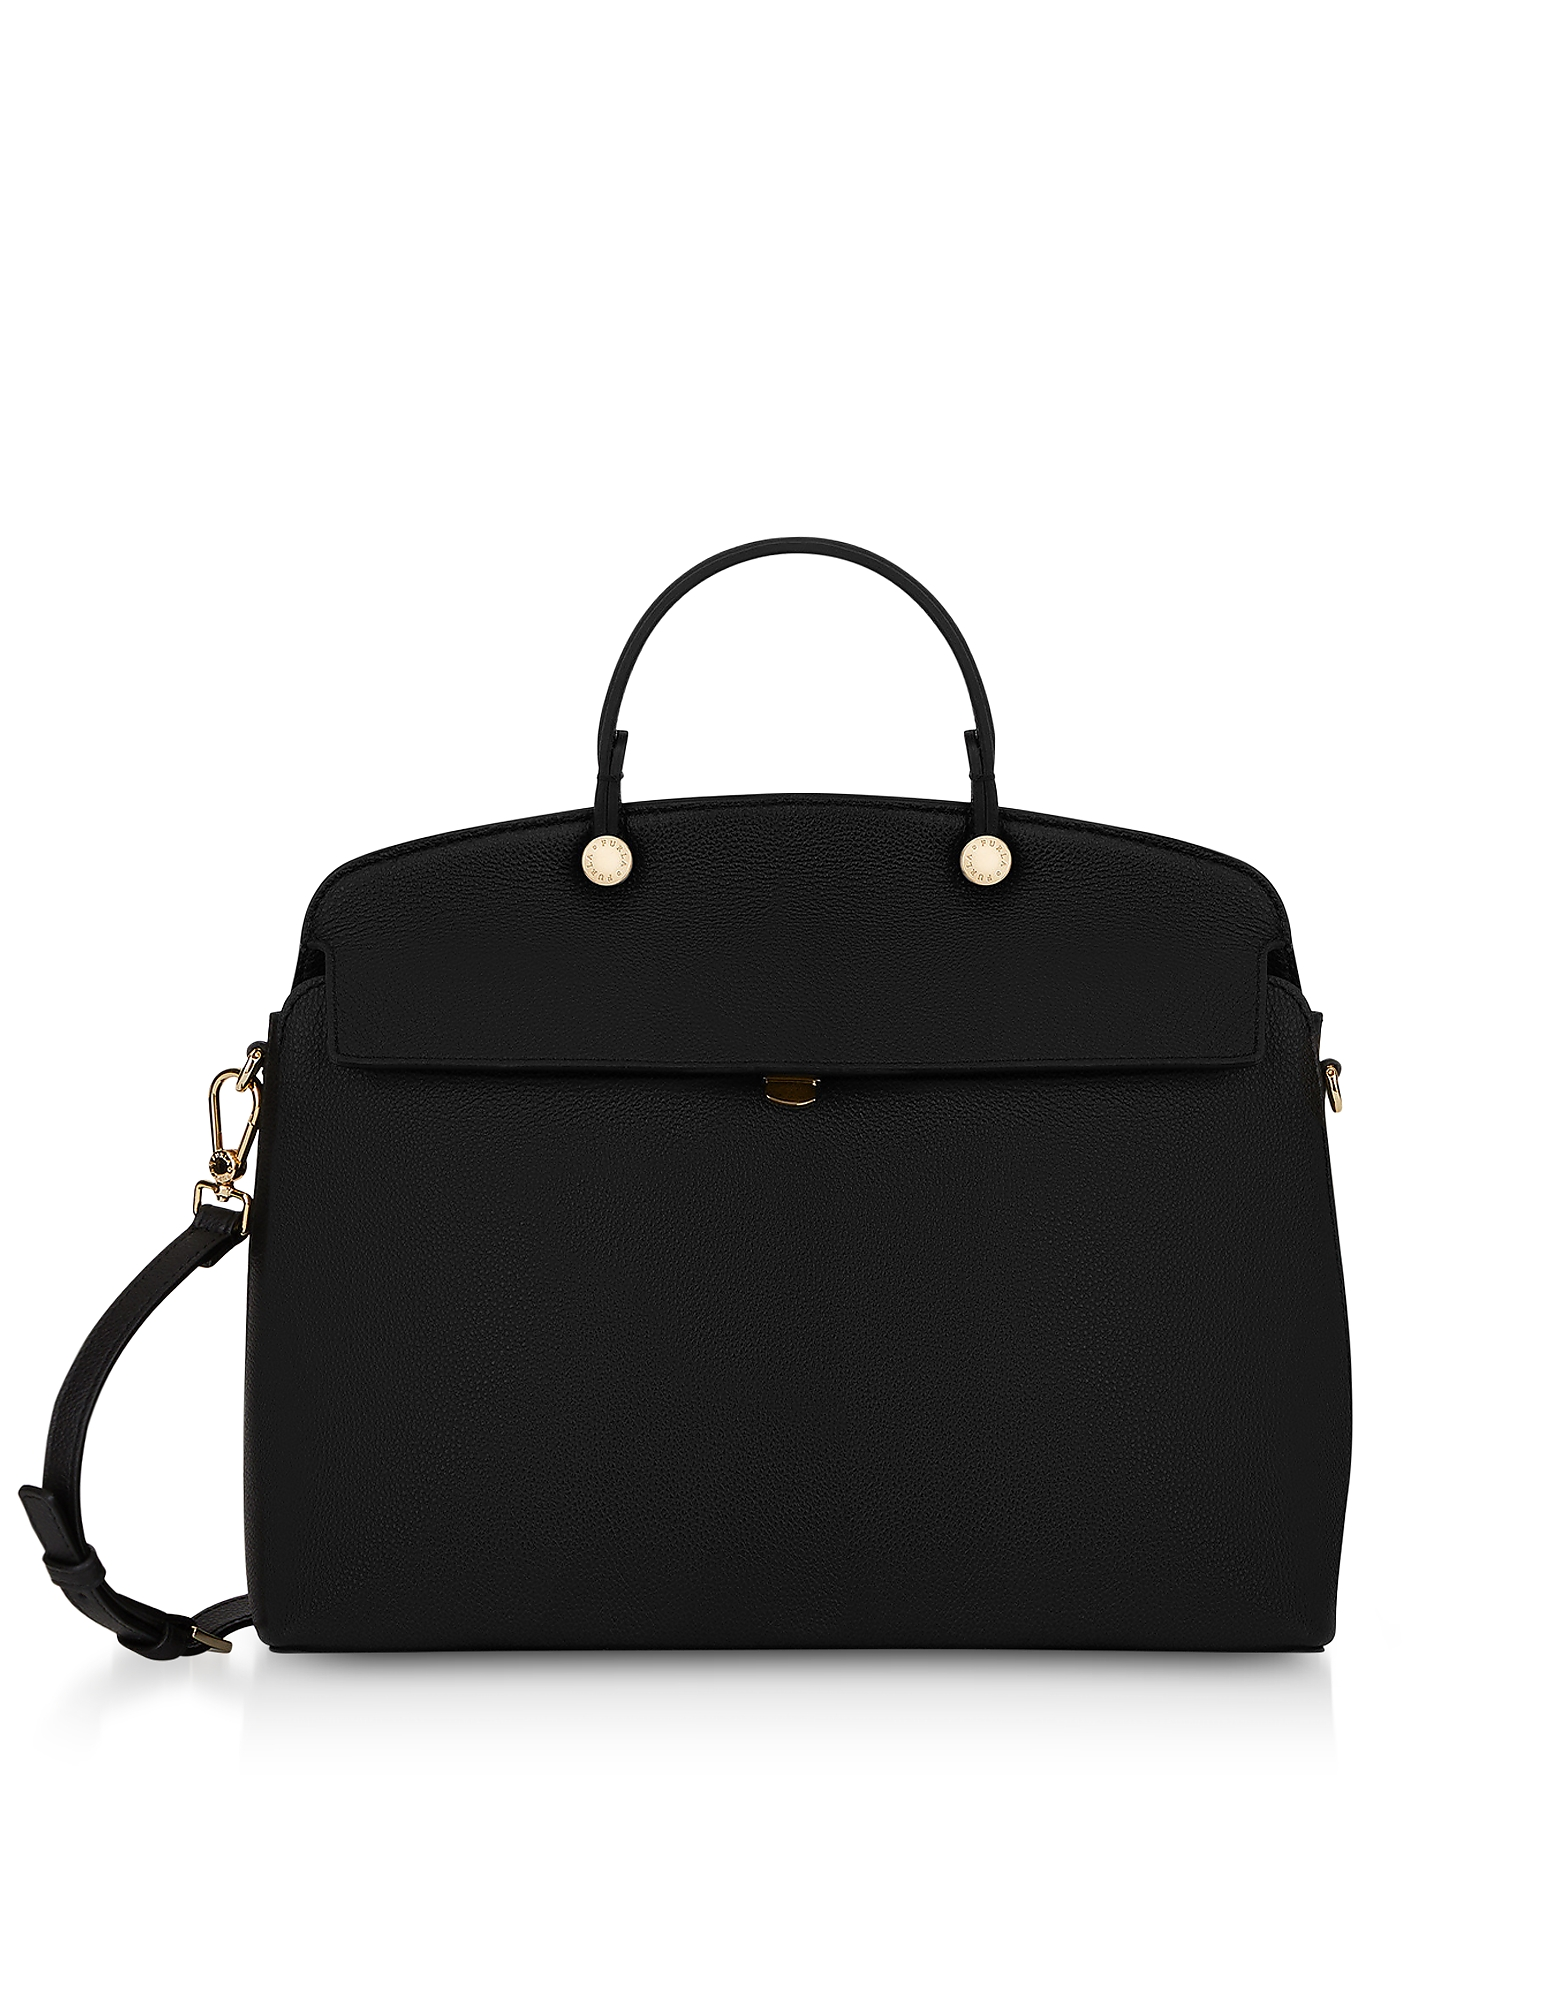 Furla Handbags, My Piper M Satchel Bag